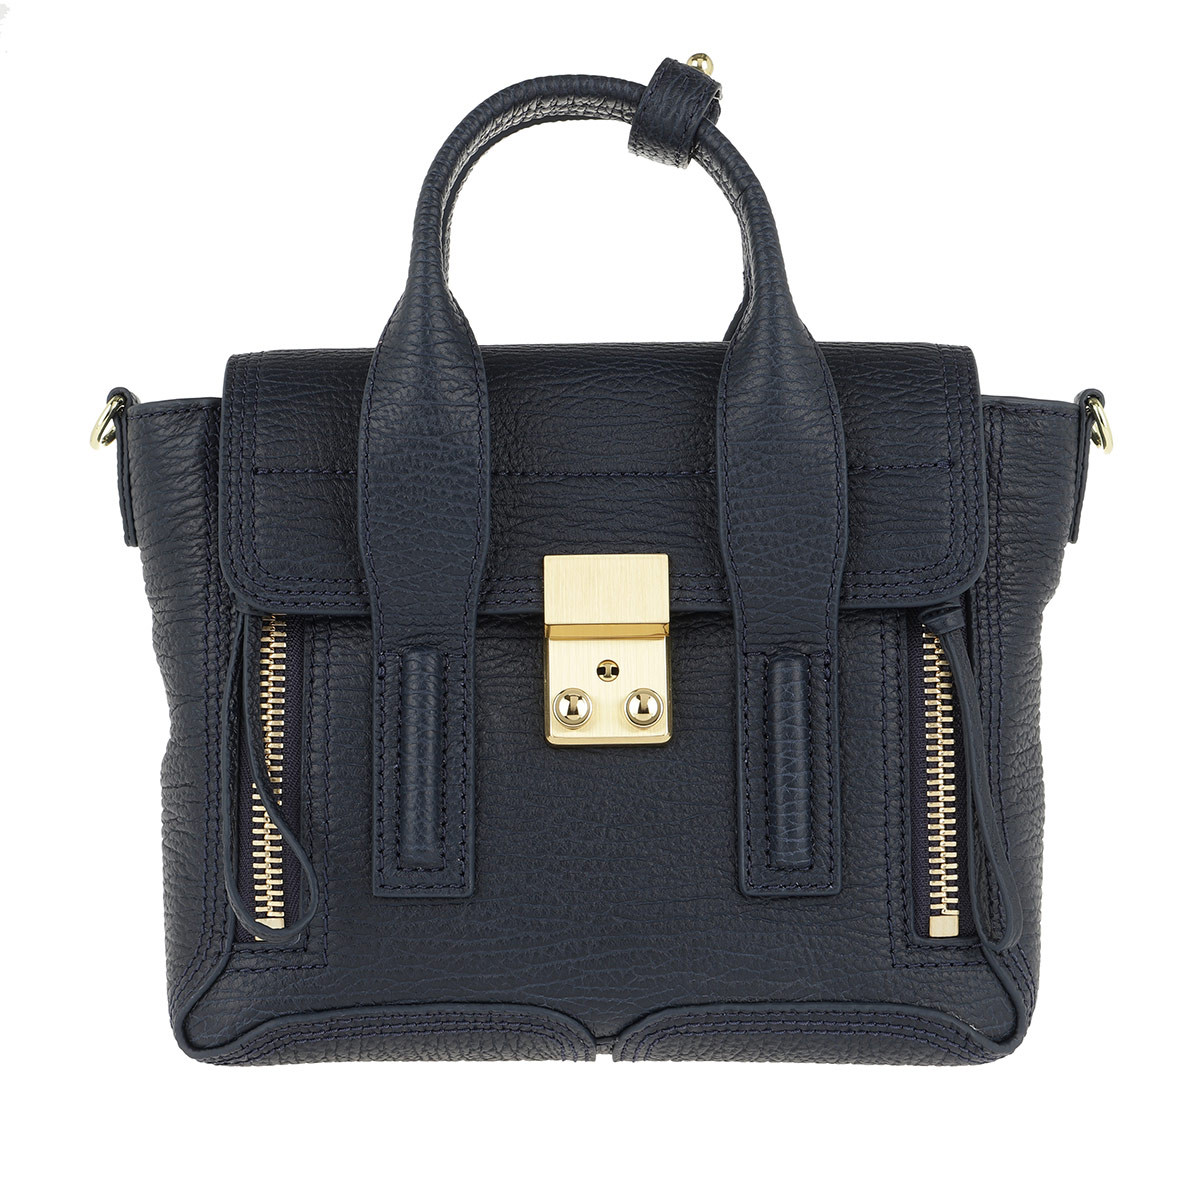 3.1 Phillip Lim Satchel Bag - Pashli Mini Satchel Ink - in marine - für Damen